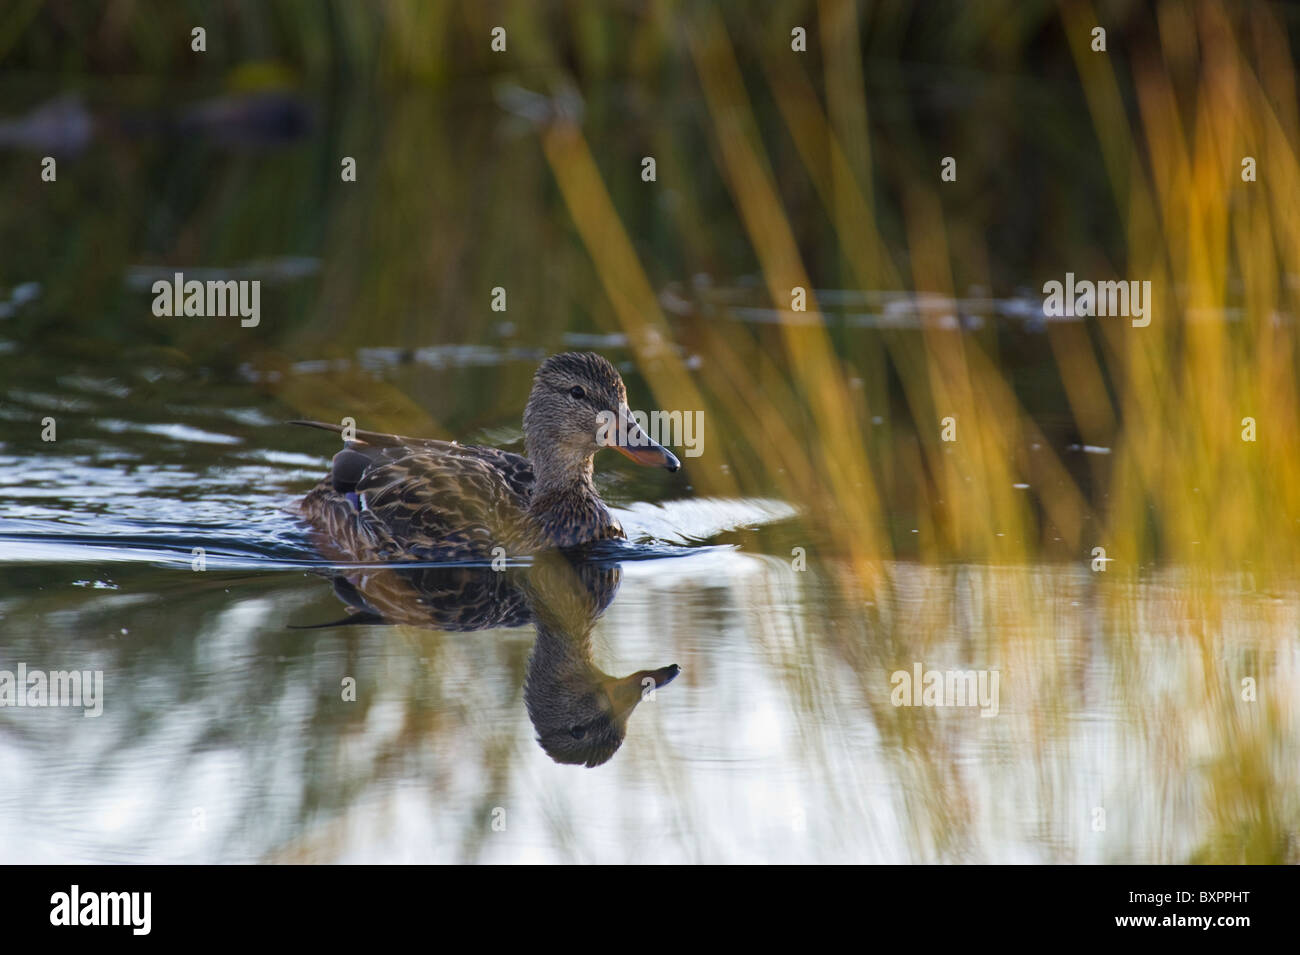 A wild female mallard duck swims through colorful fall grass reflections. - Stock Image